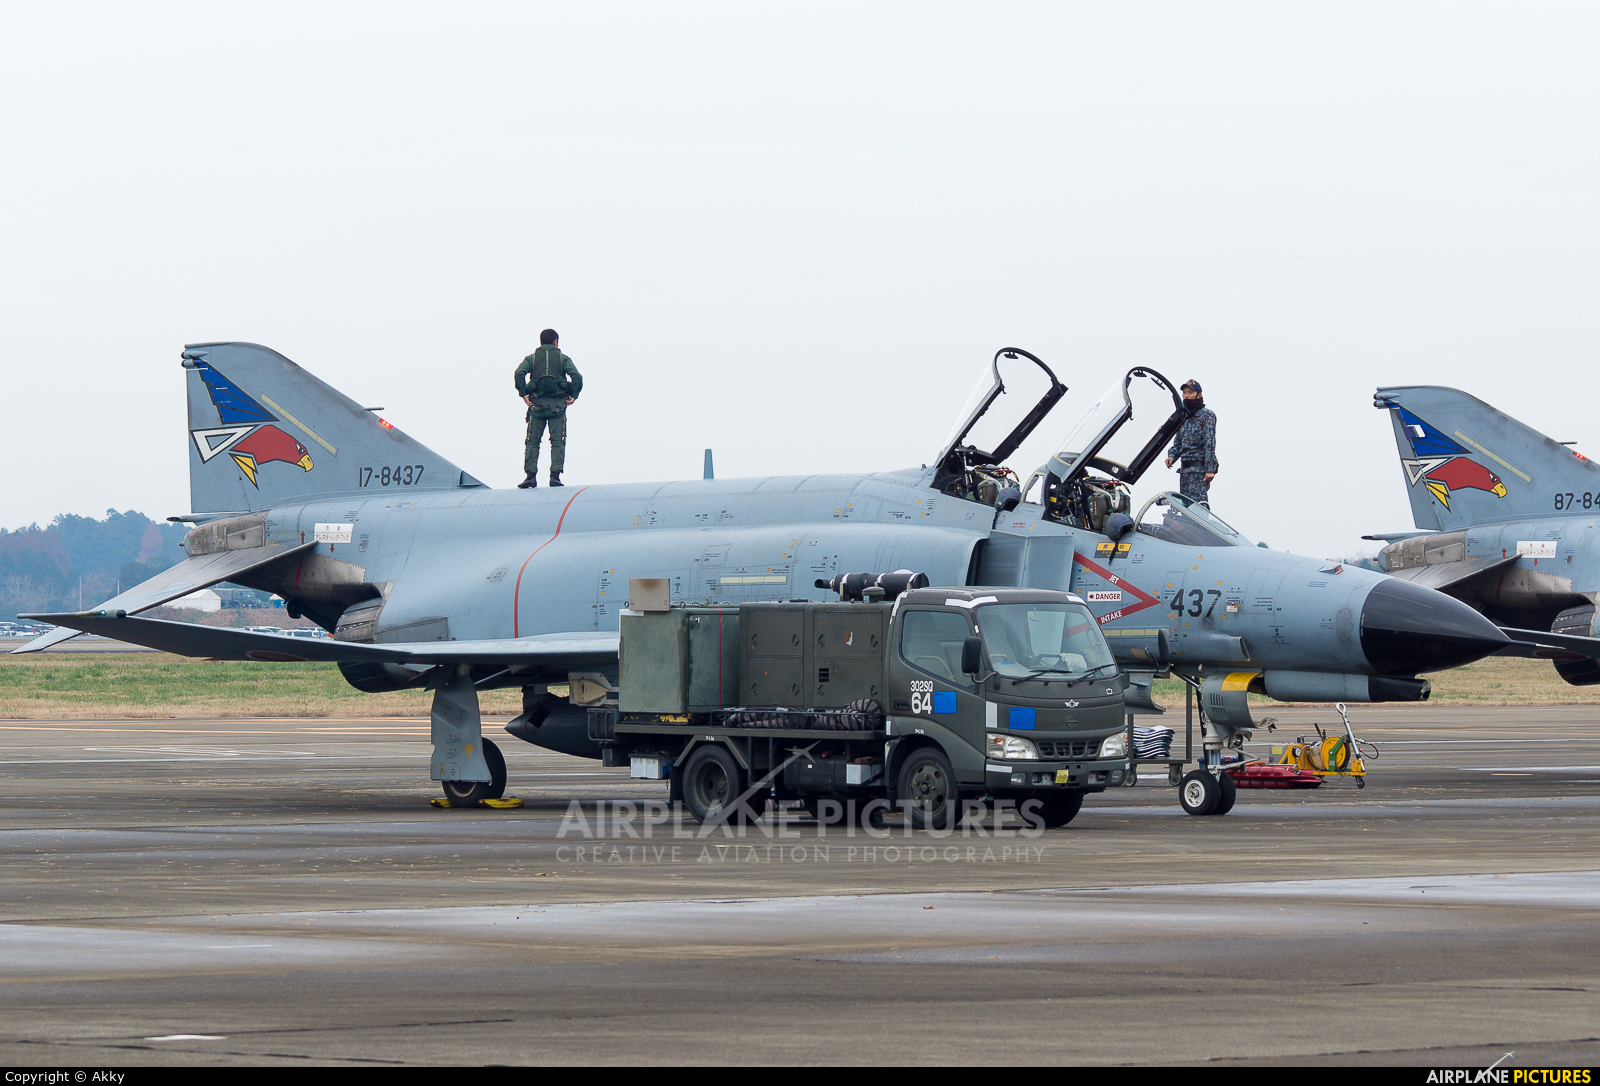 Japan - Air Self Defence Force 17-8473 aircraft at Ibaraki - Hyakuri AB